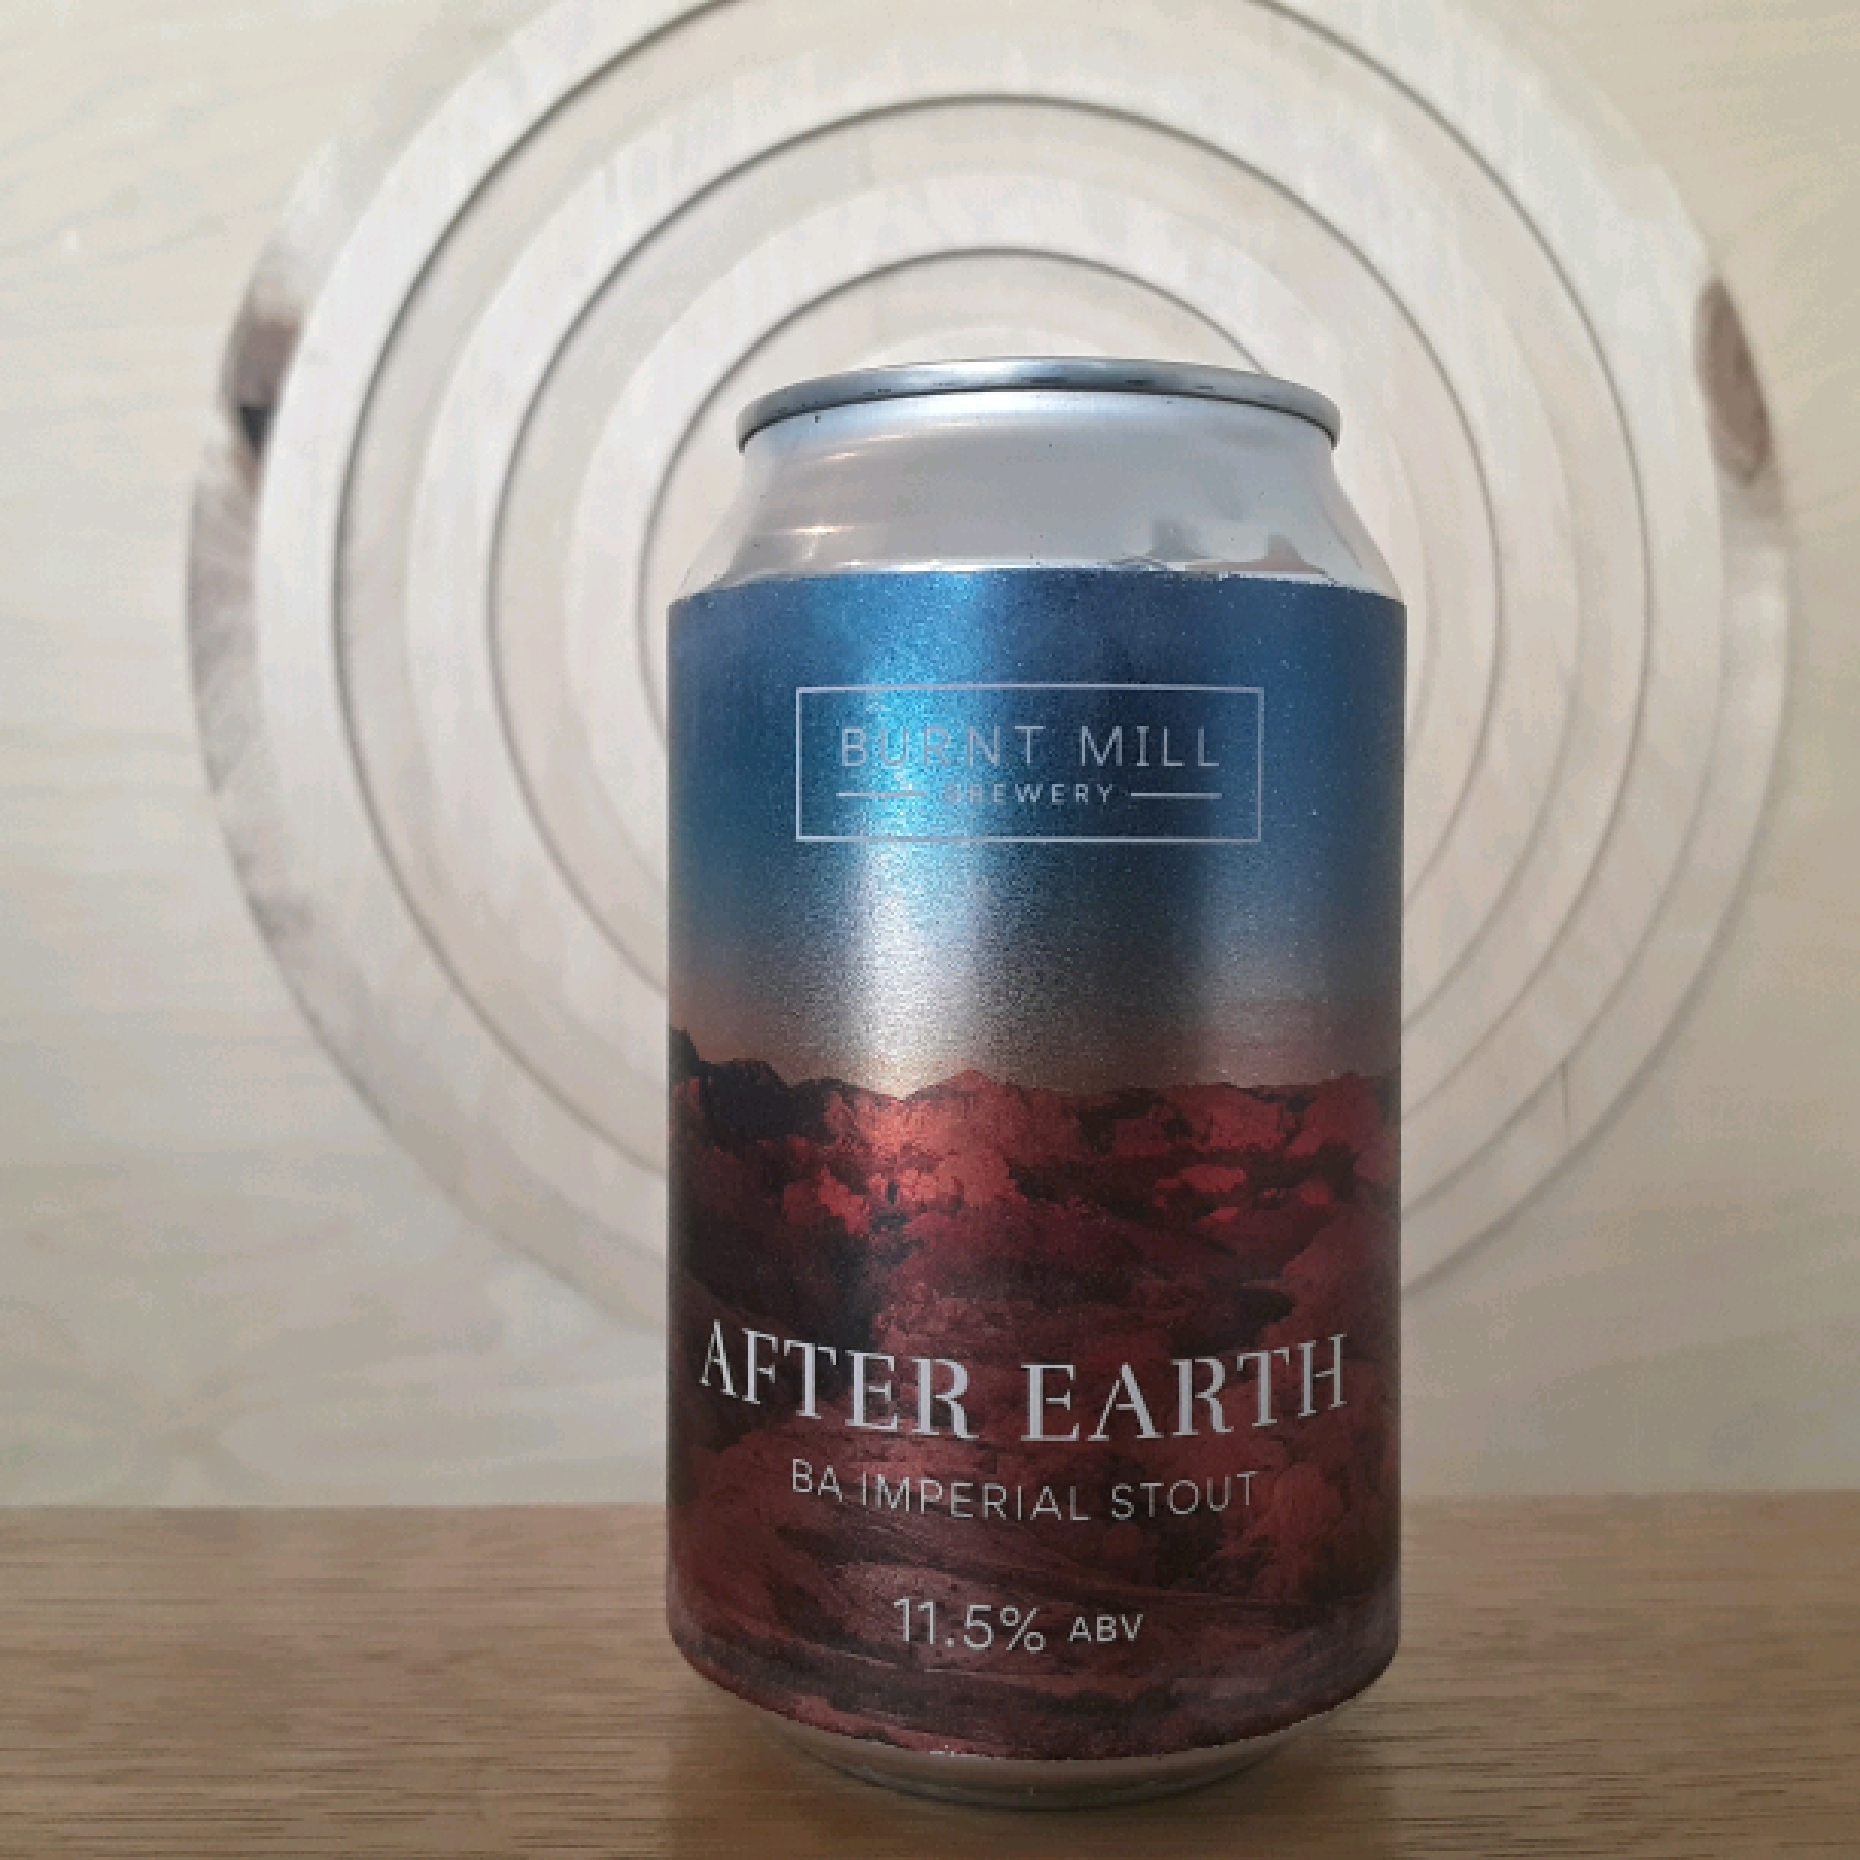 Burnt Mill After Earth BA Imperial Stout